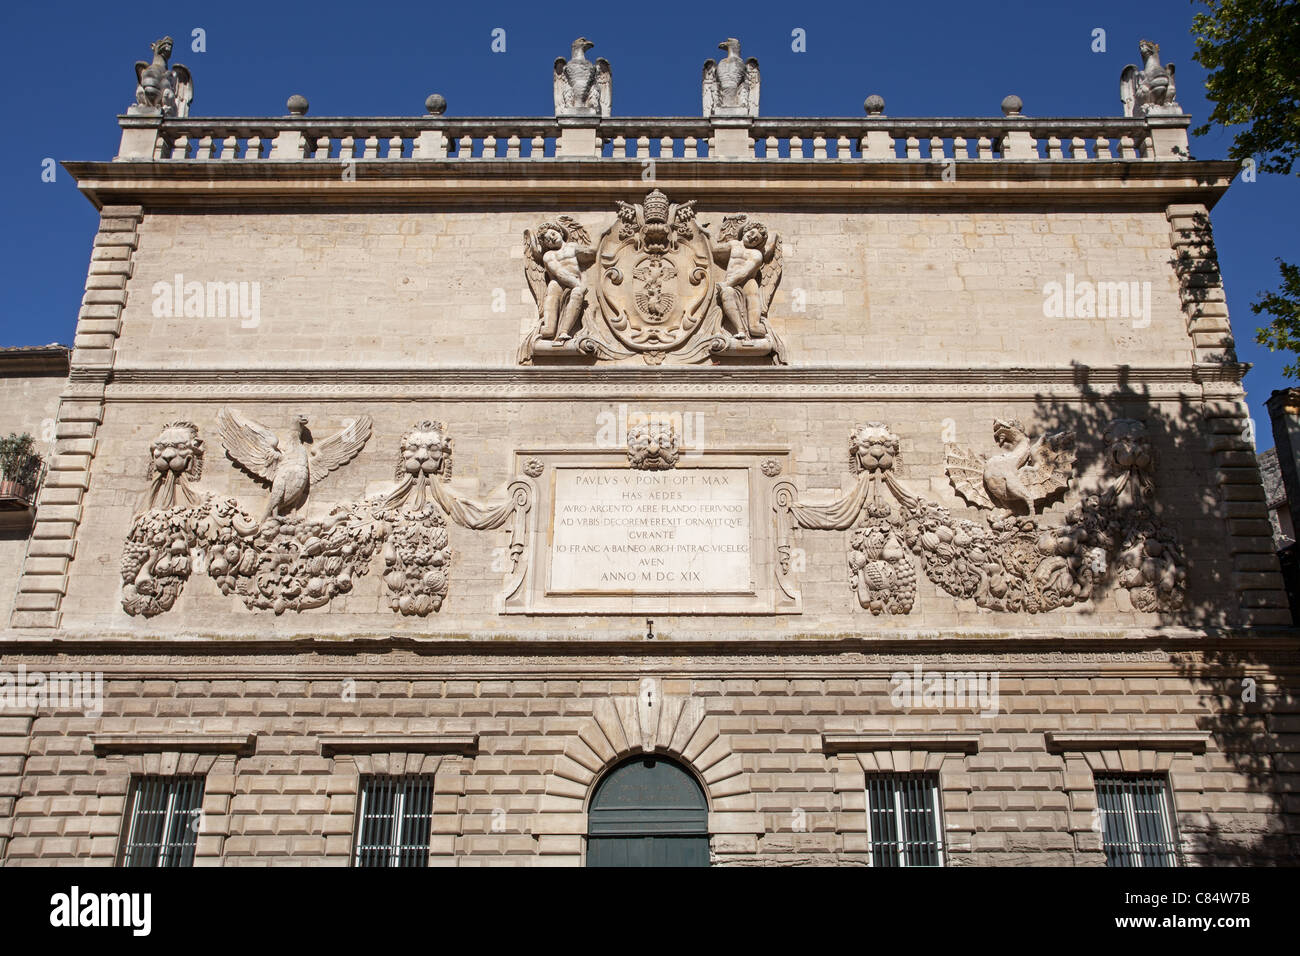 Avignon: Paul V's Coat-of-Arms Stock Photo